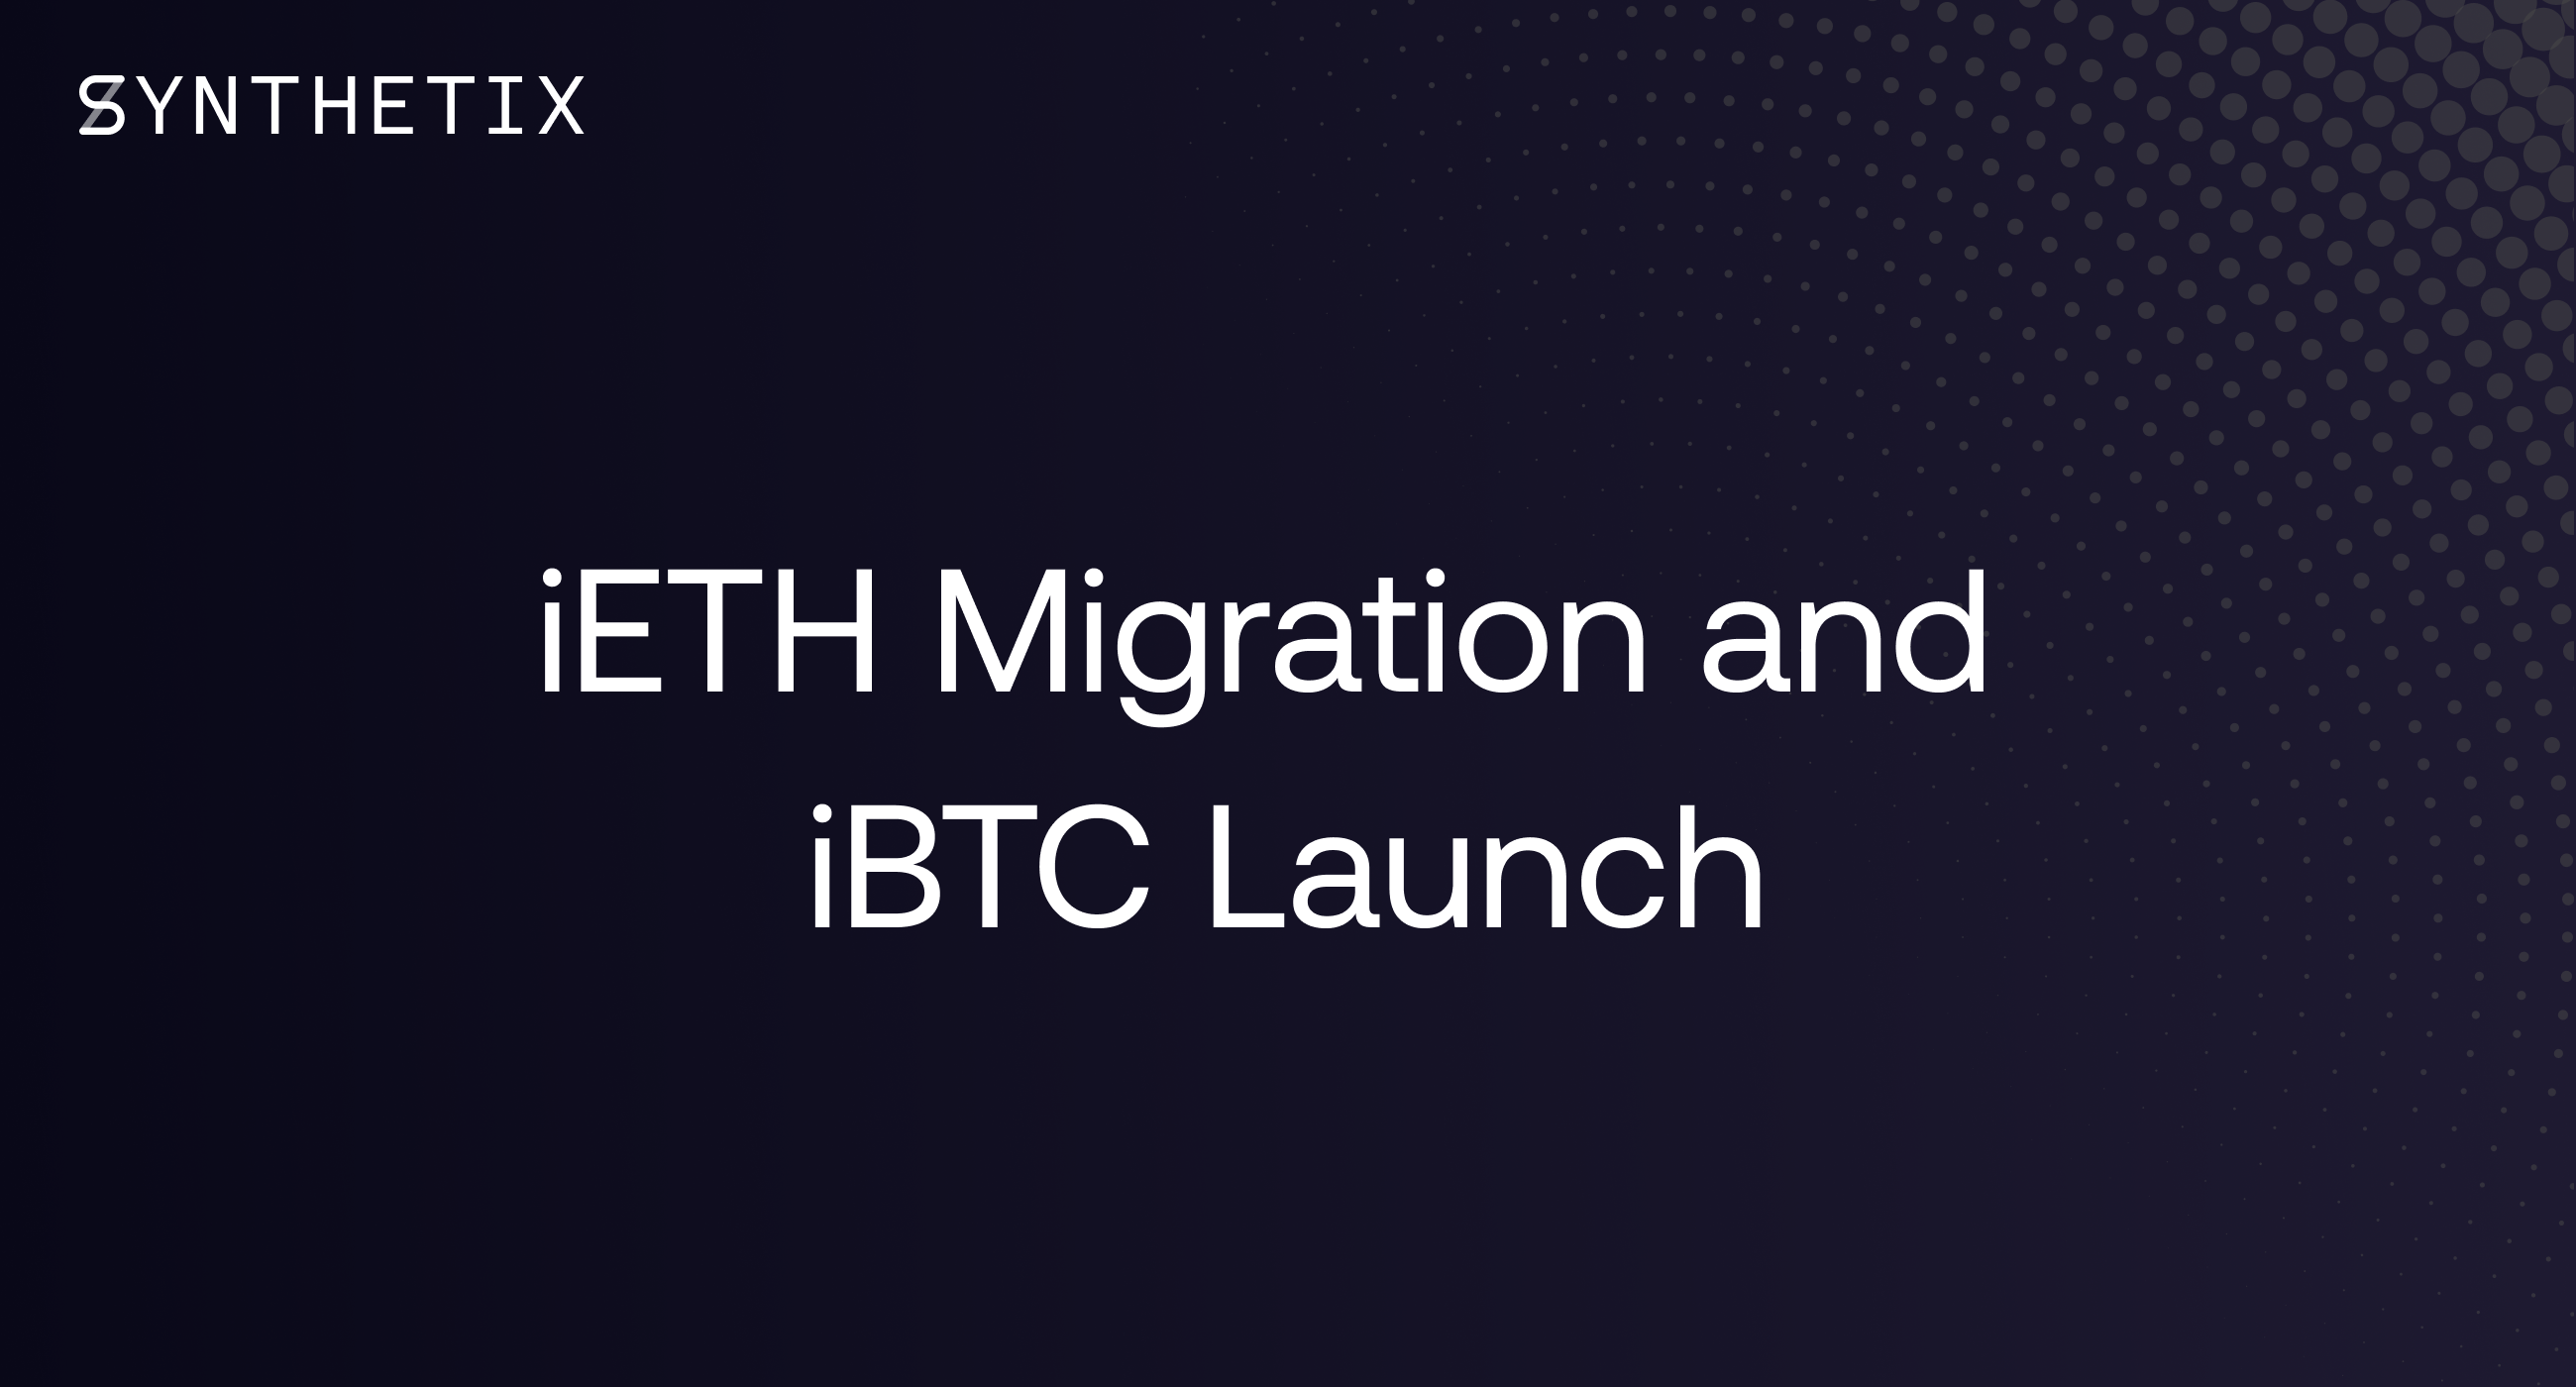 iETH Migration and iBTC Launch